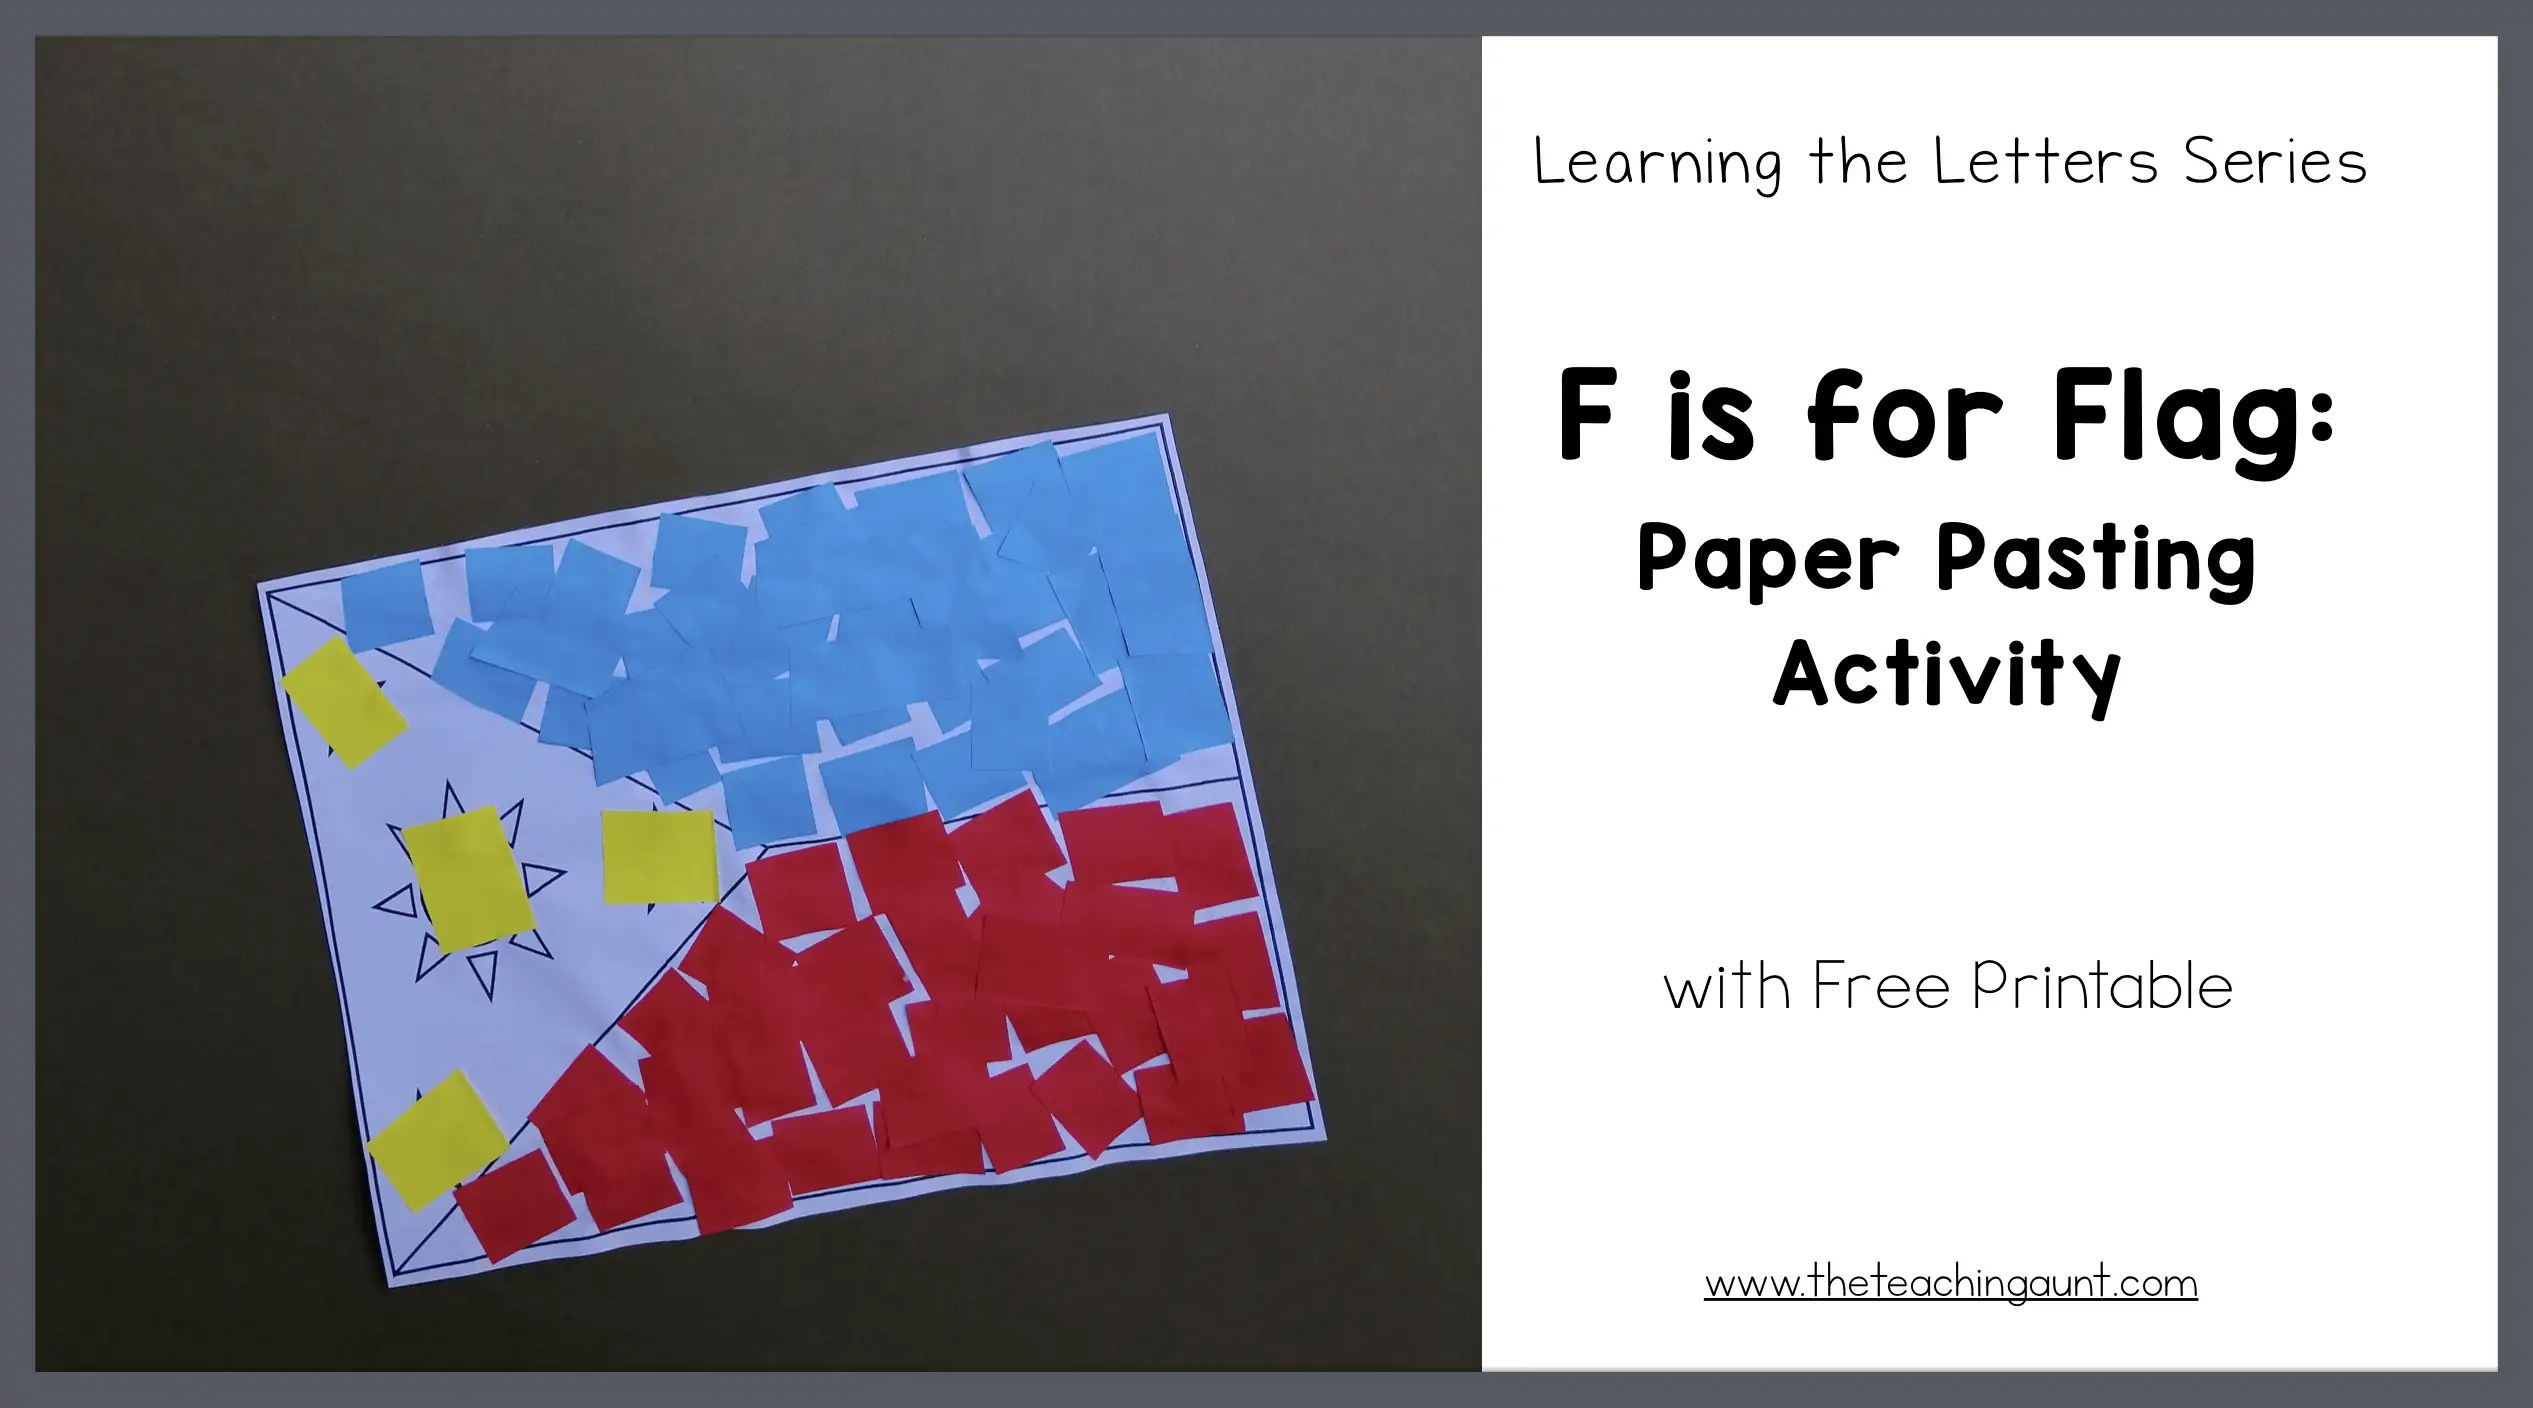 F is for Flag: Paper Pasting Activity